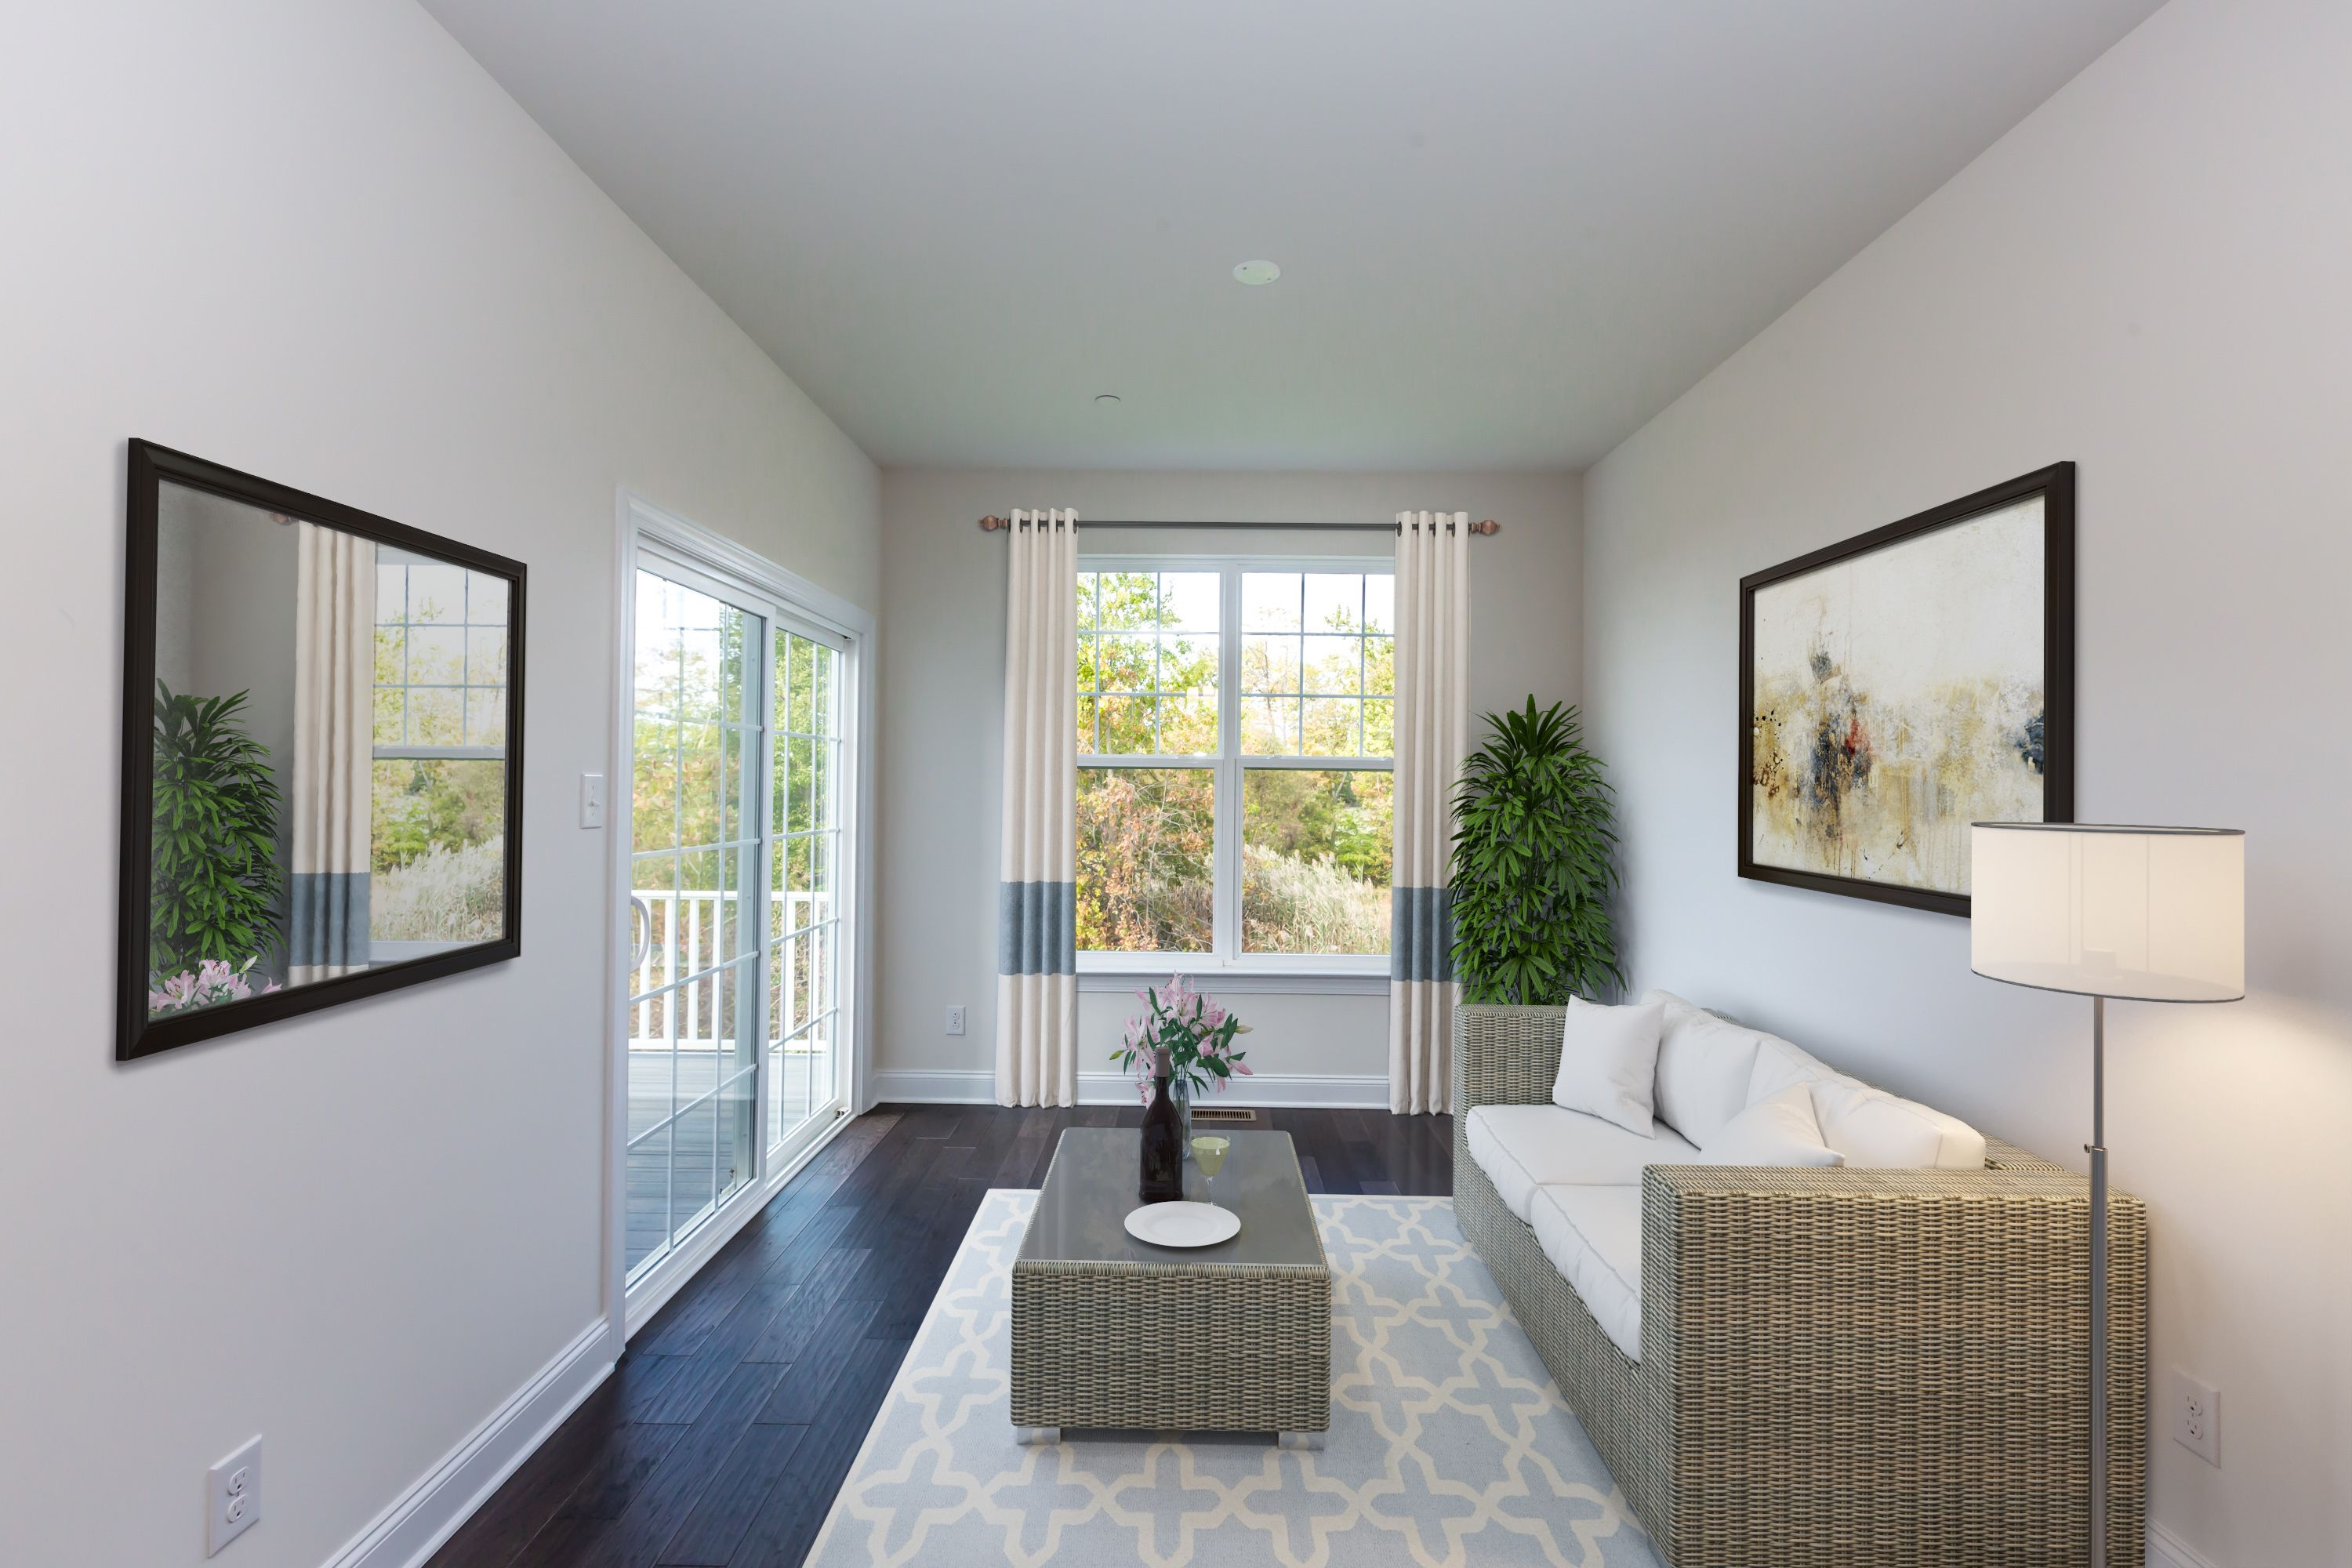 Living Area featured in the Prestley By Rouse Chamberlin Homes in Philadelphia, PA